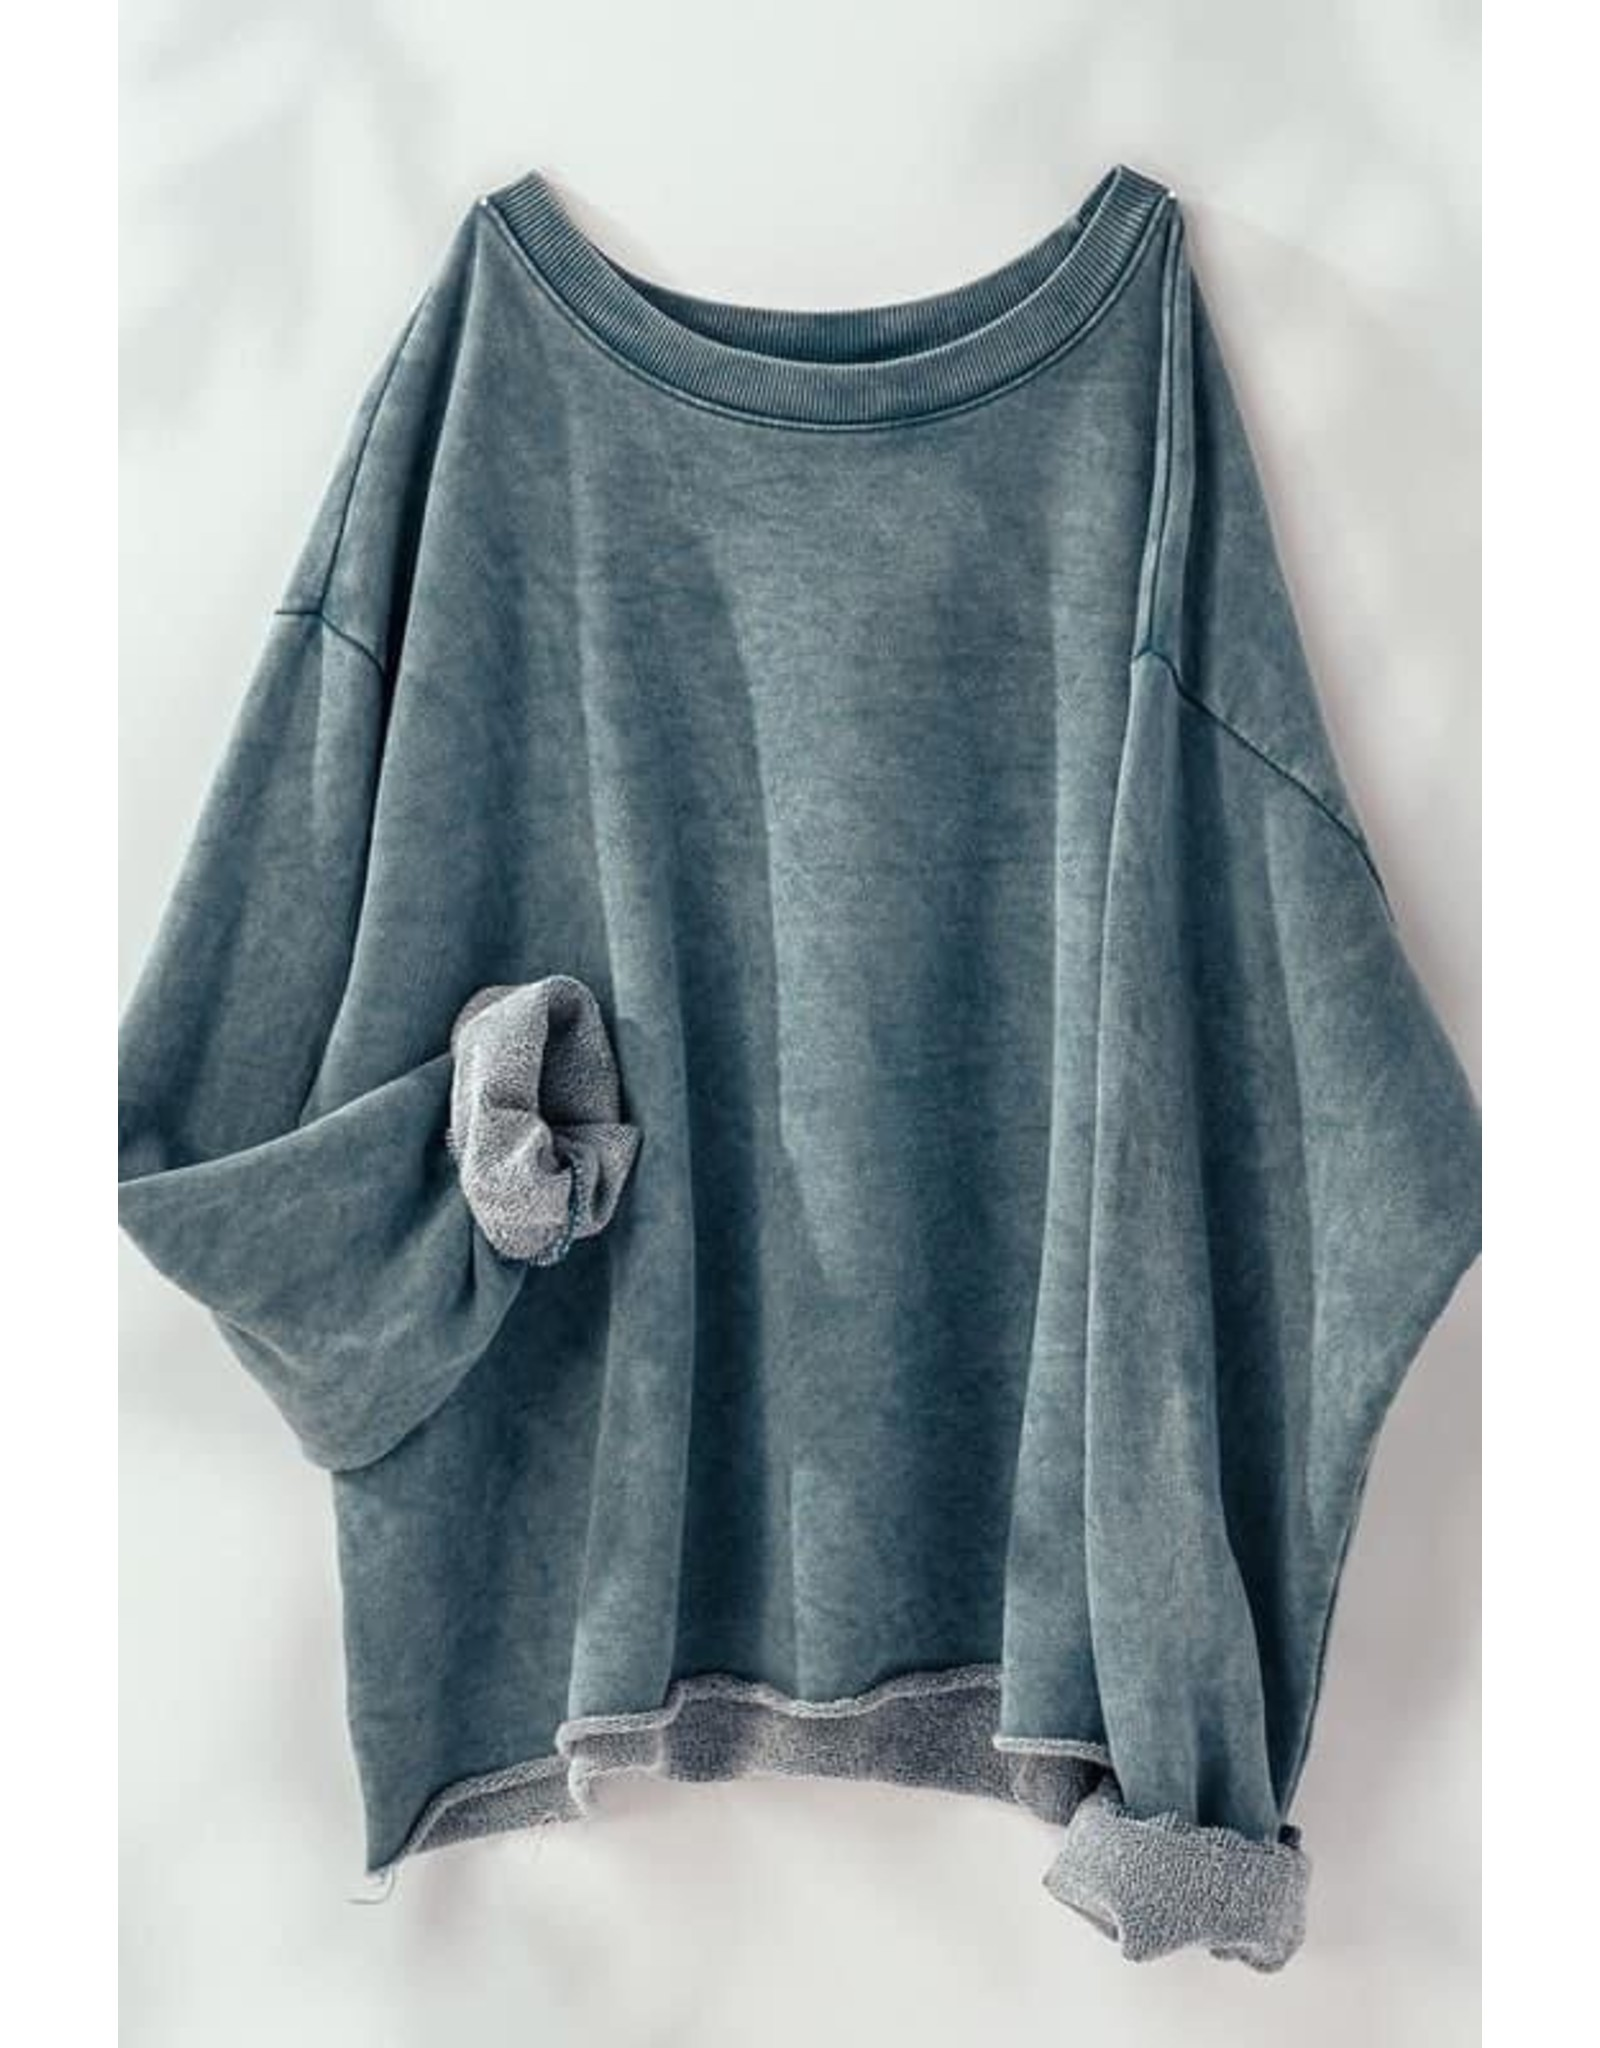 Mineral Washed French Terry Cropped Sweatshirt